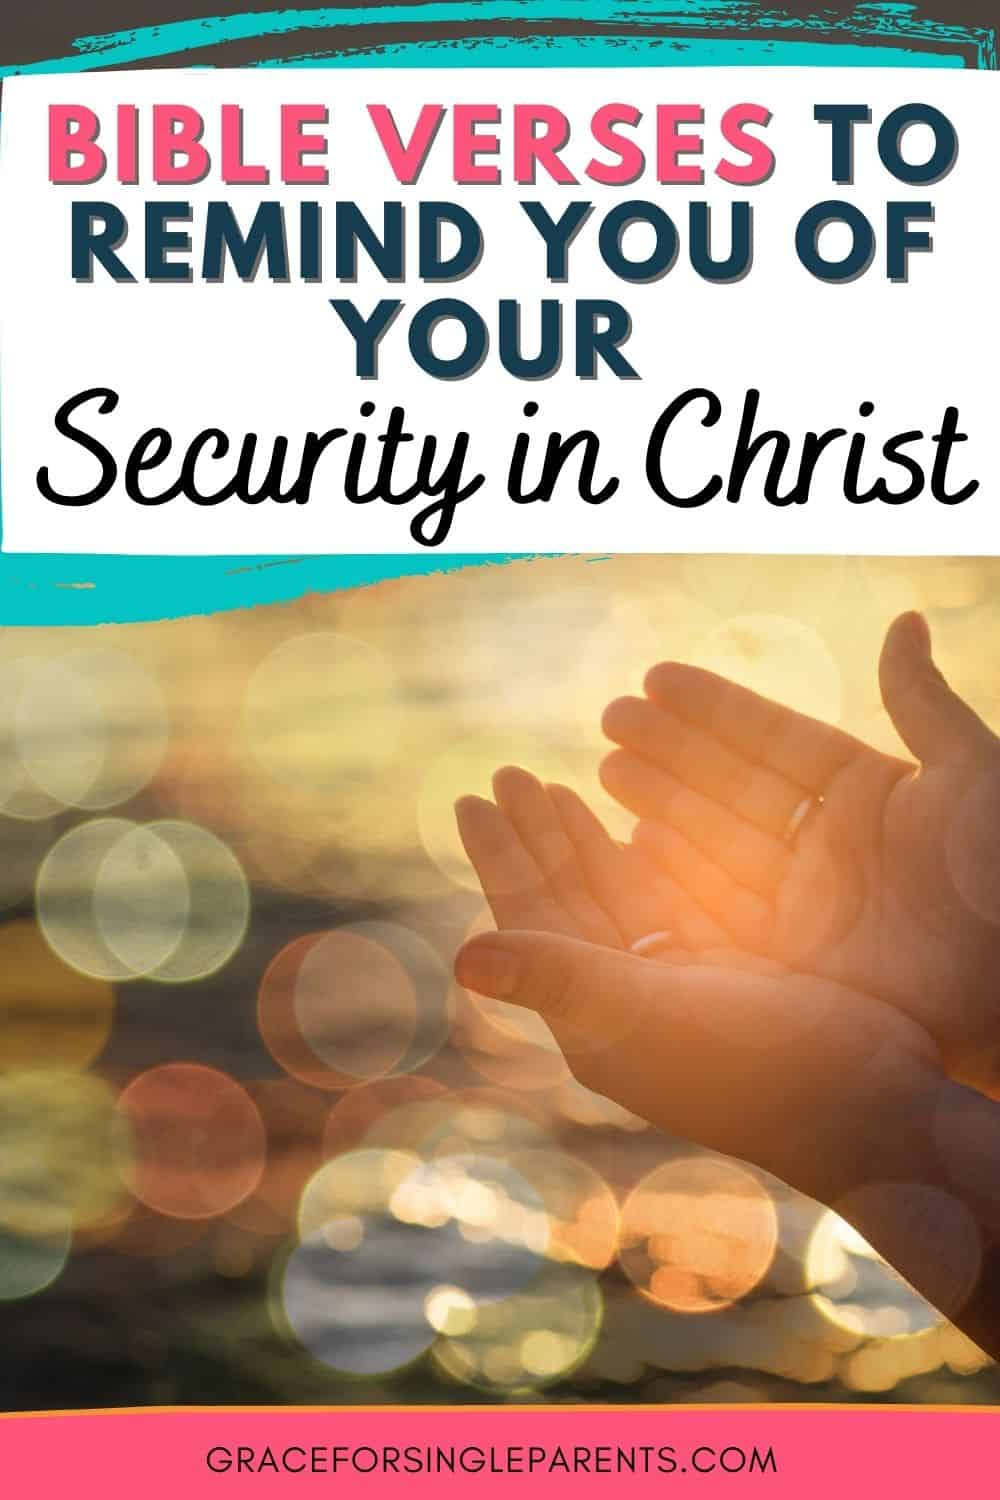 Bible Verses to Remind You of Your Security in Christ